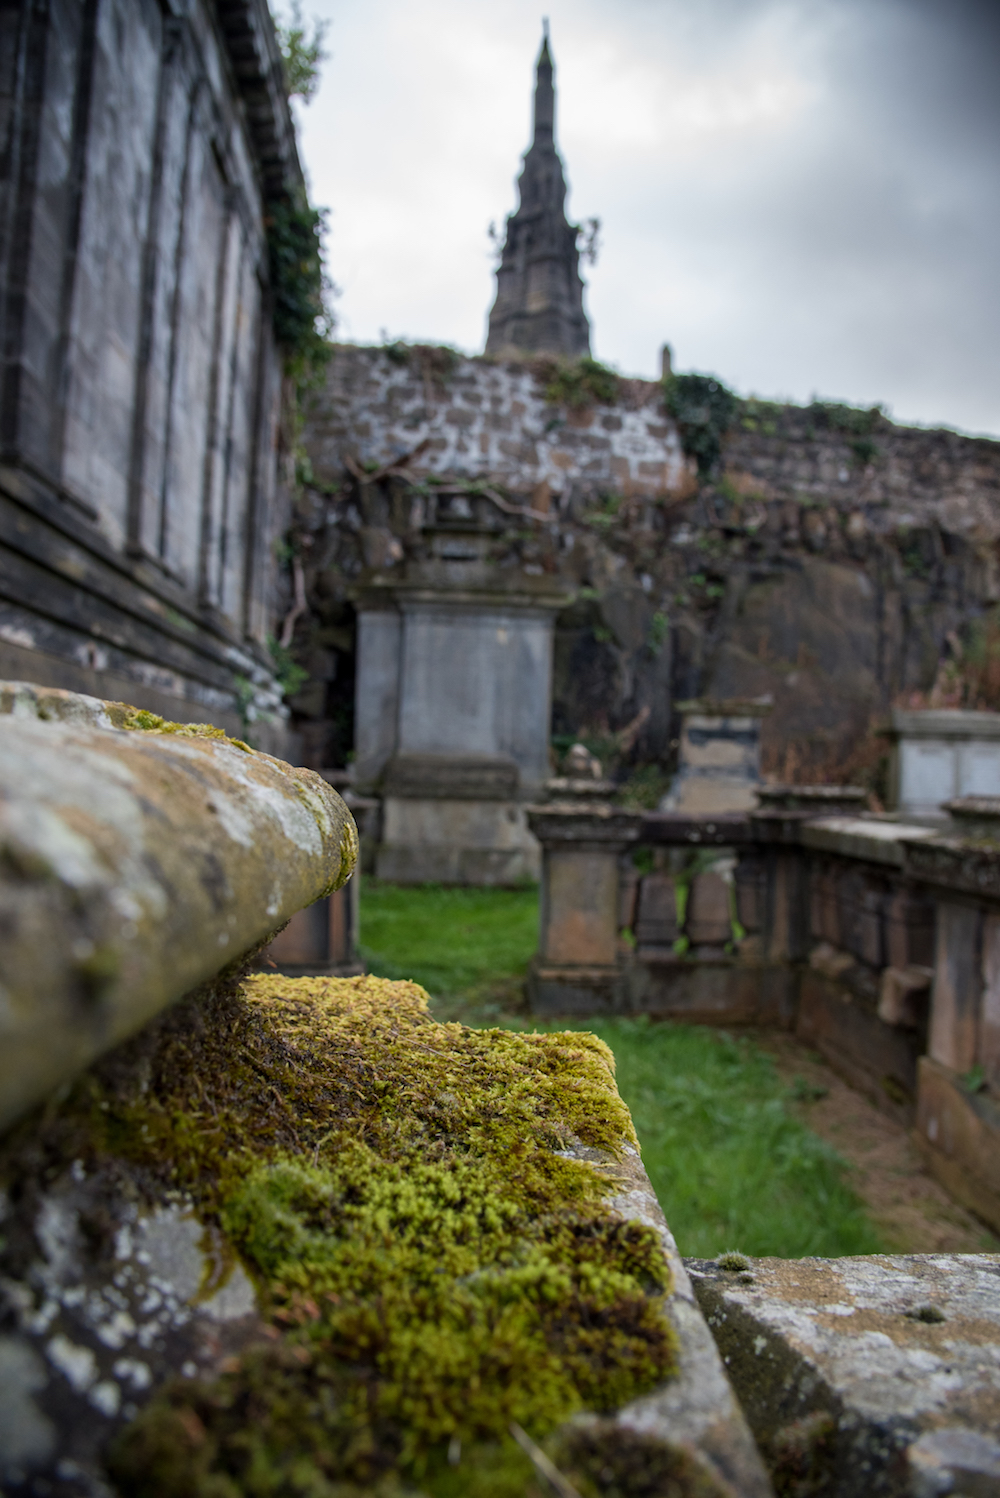 necropolis-glasgow-cemetery-historic-church-tombstones-scotland-buddha-drinks-fanta-jenny-adams-photographer-writer-travel-europe-moss